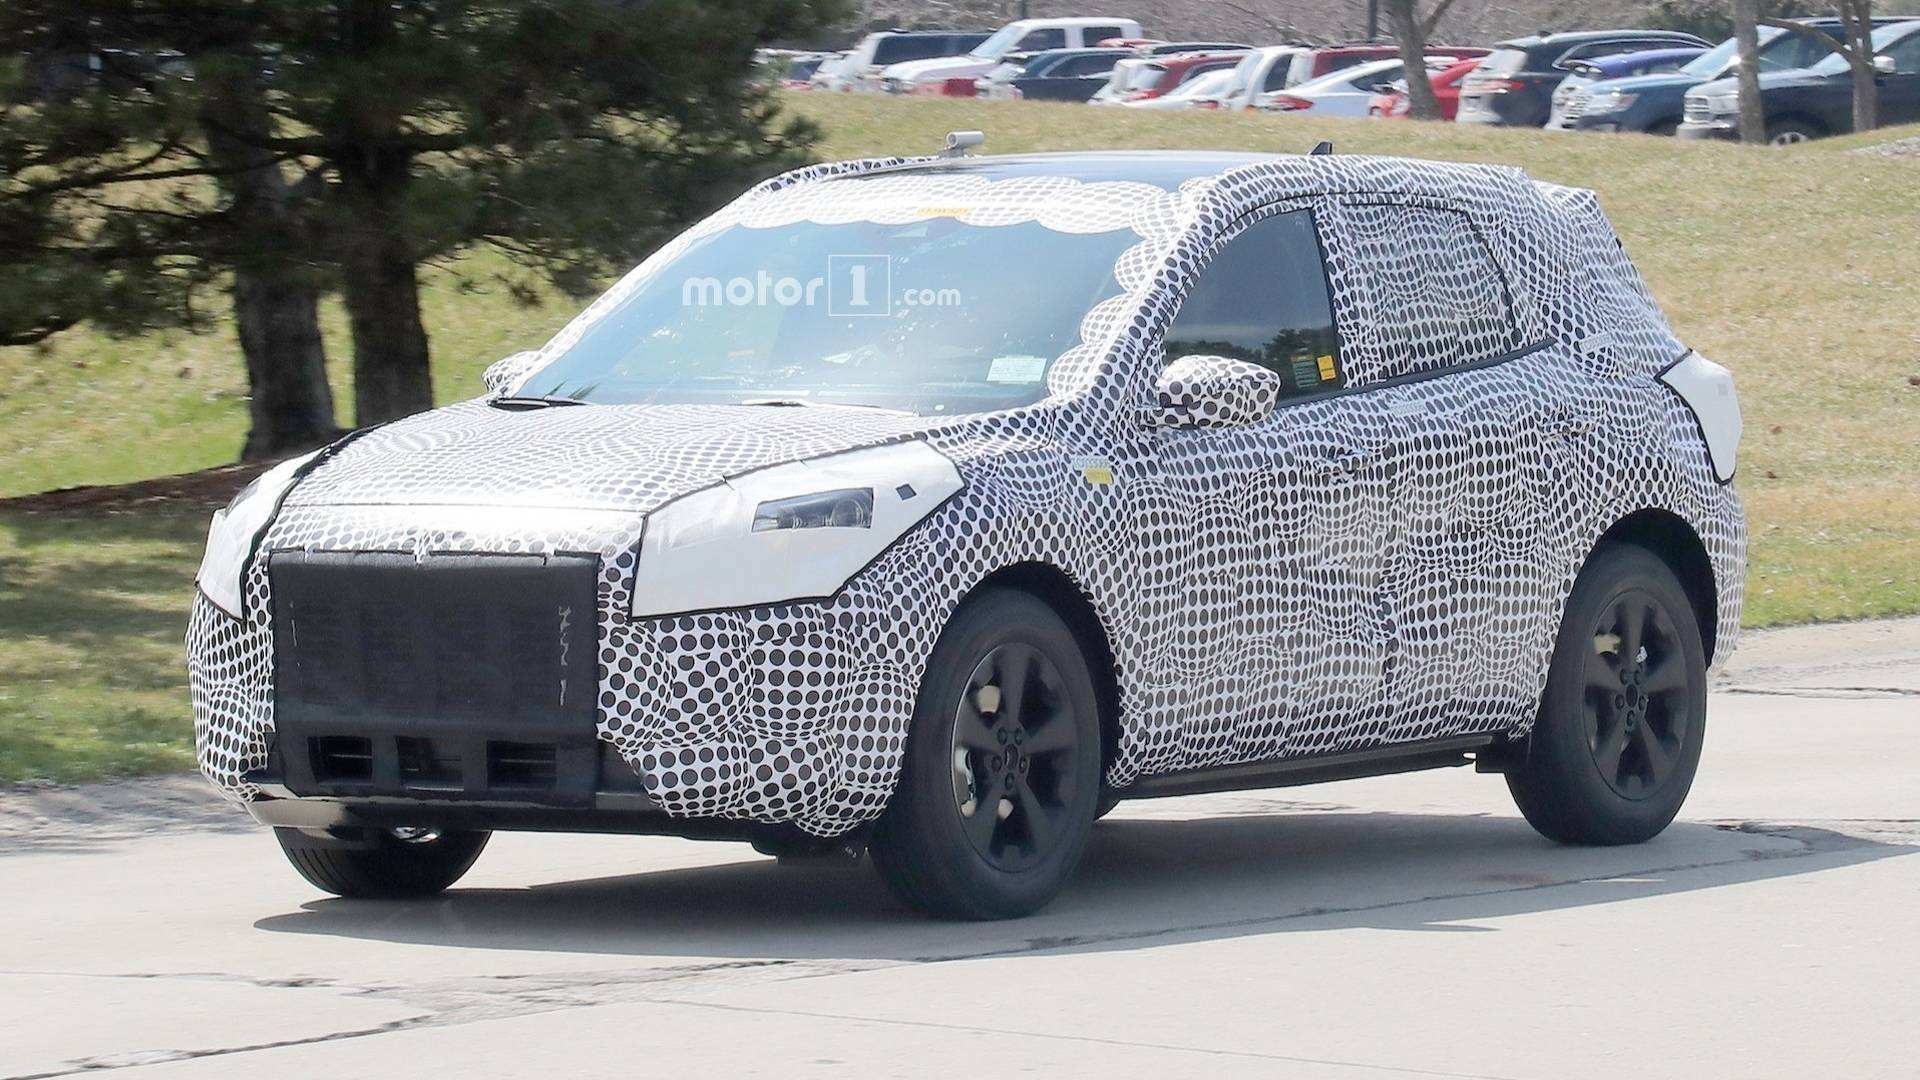 96 Gallery of 2020 The Spy Shots Ford Fusion Pictures for 2020 The Spy Shots Ford Fusion